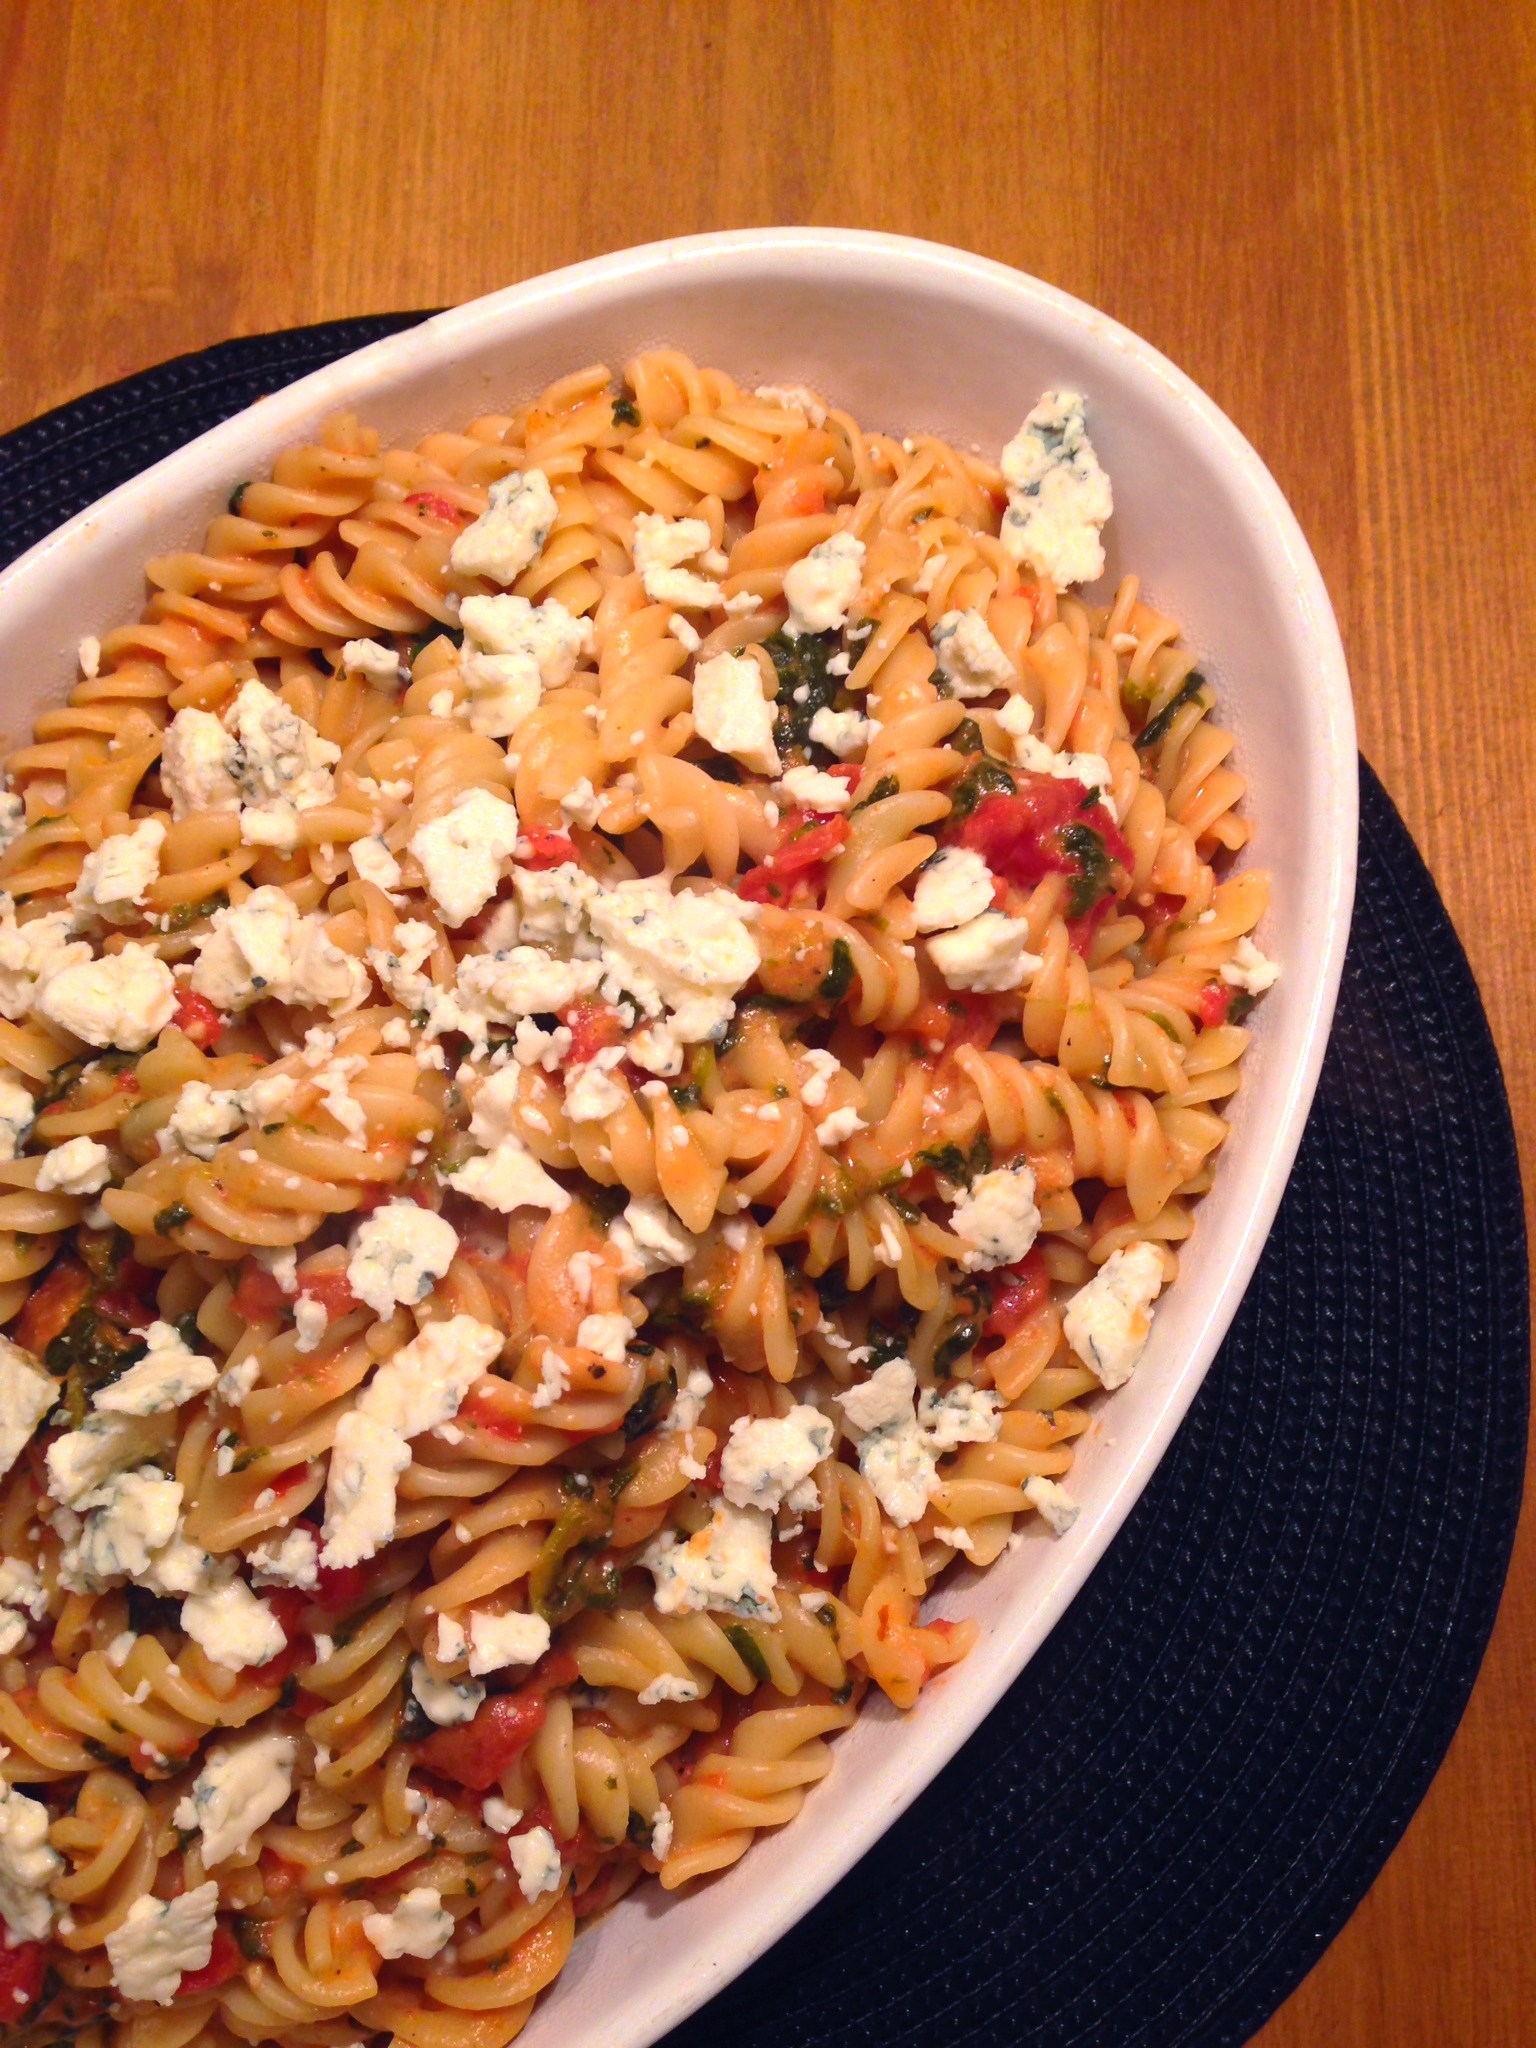 ... caught my eye though – Pasta with Tomato-Blue Cheese Sauce